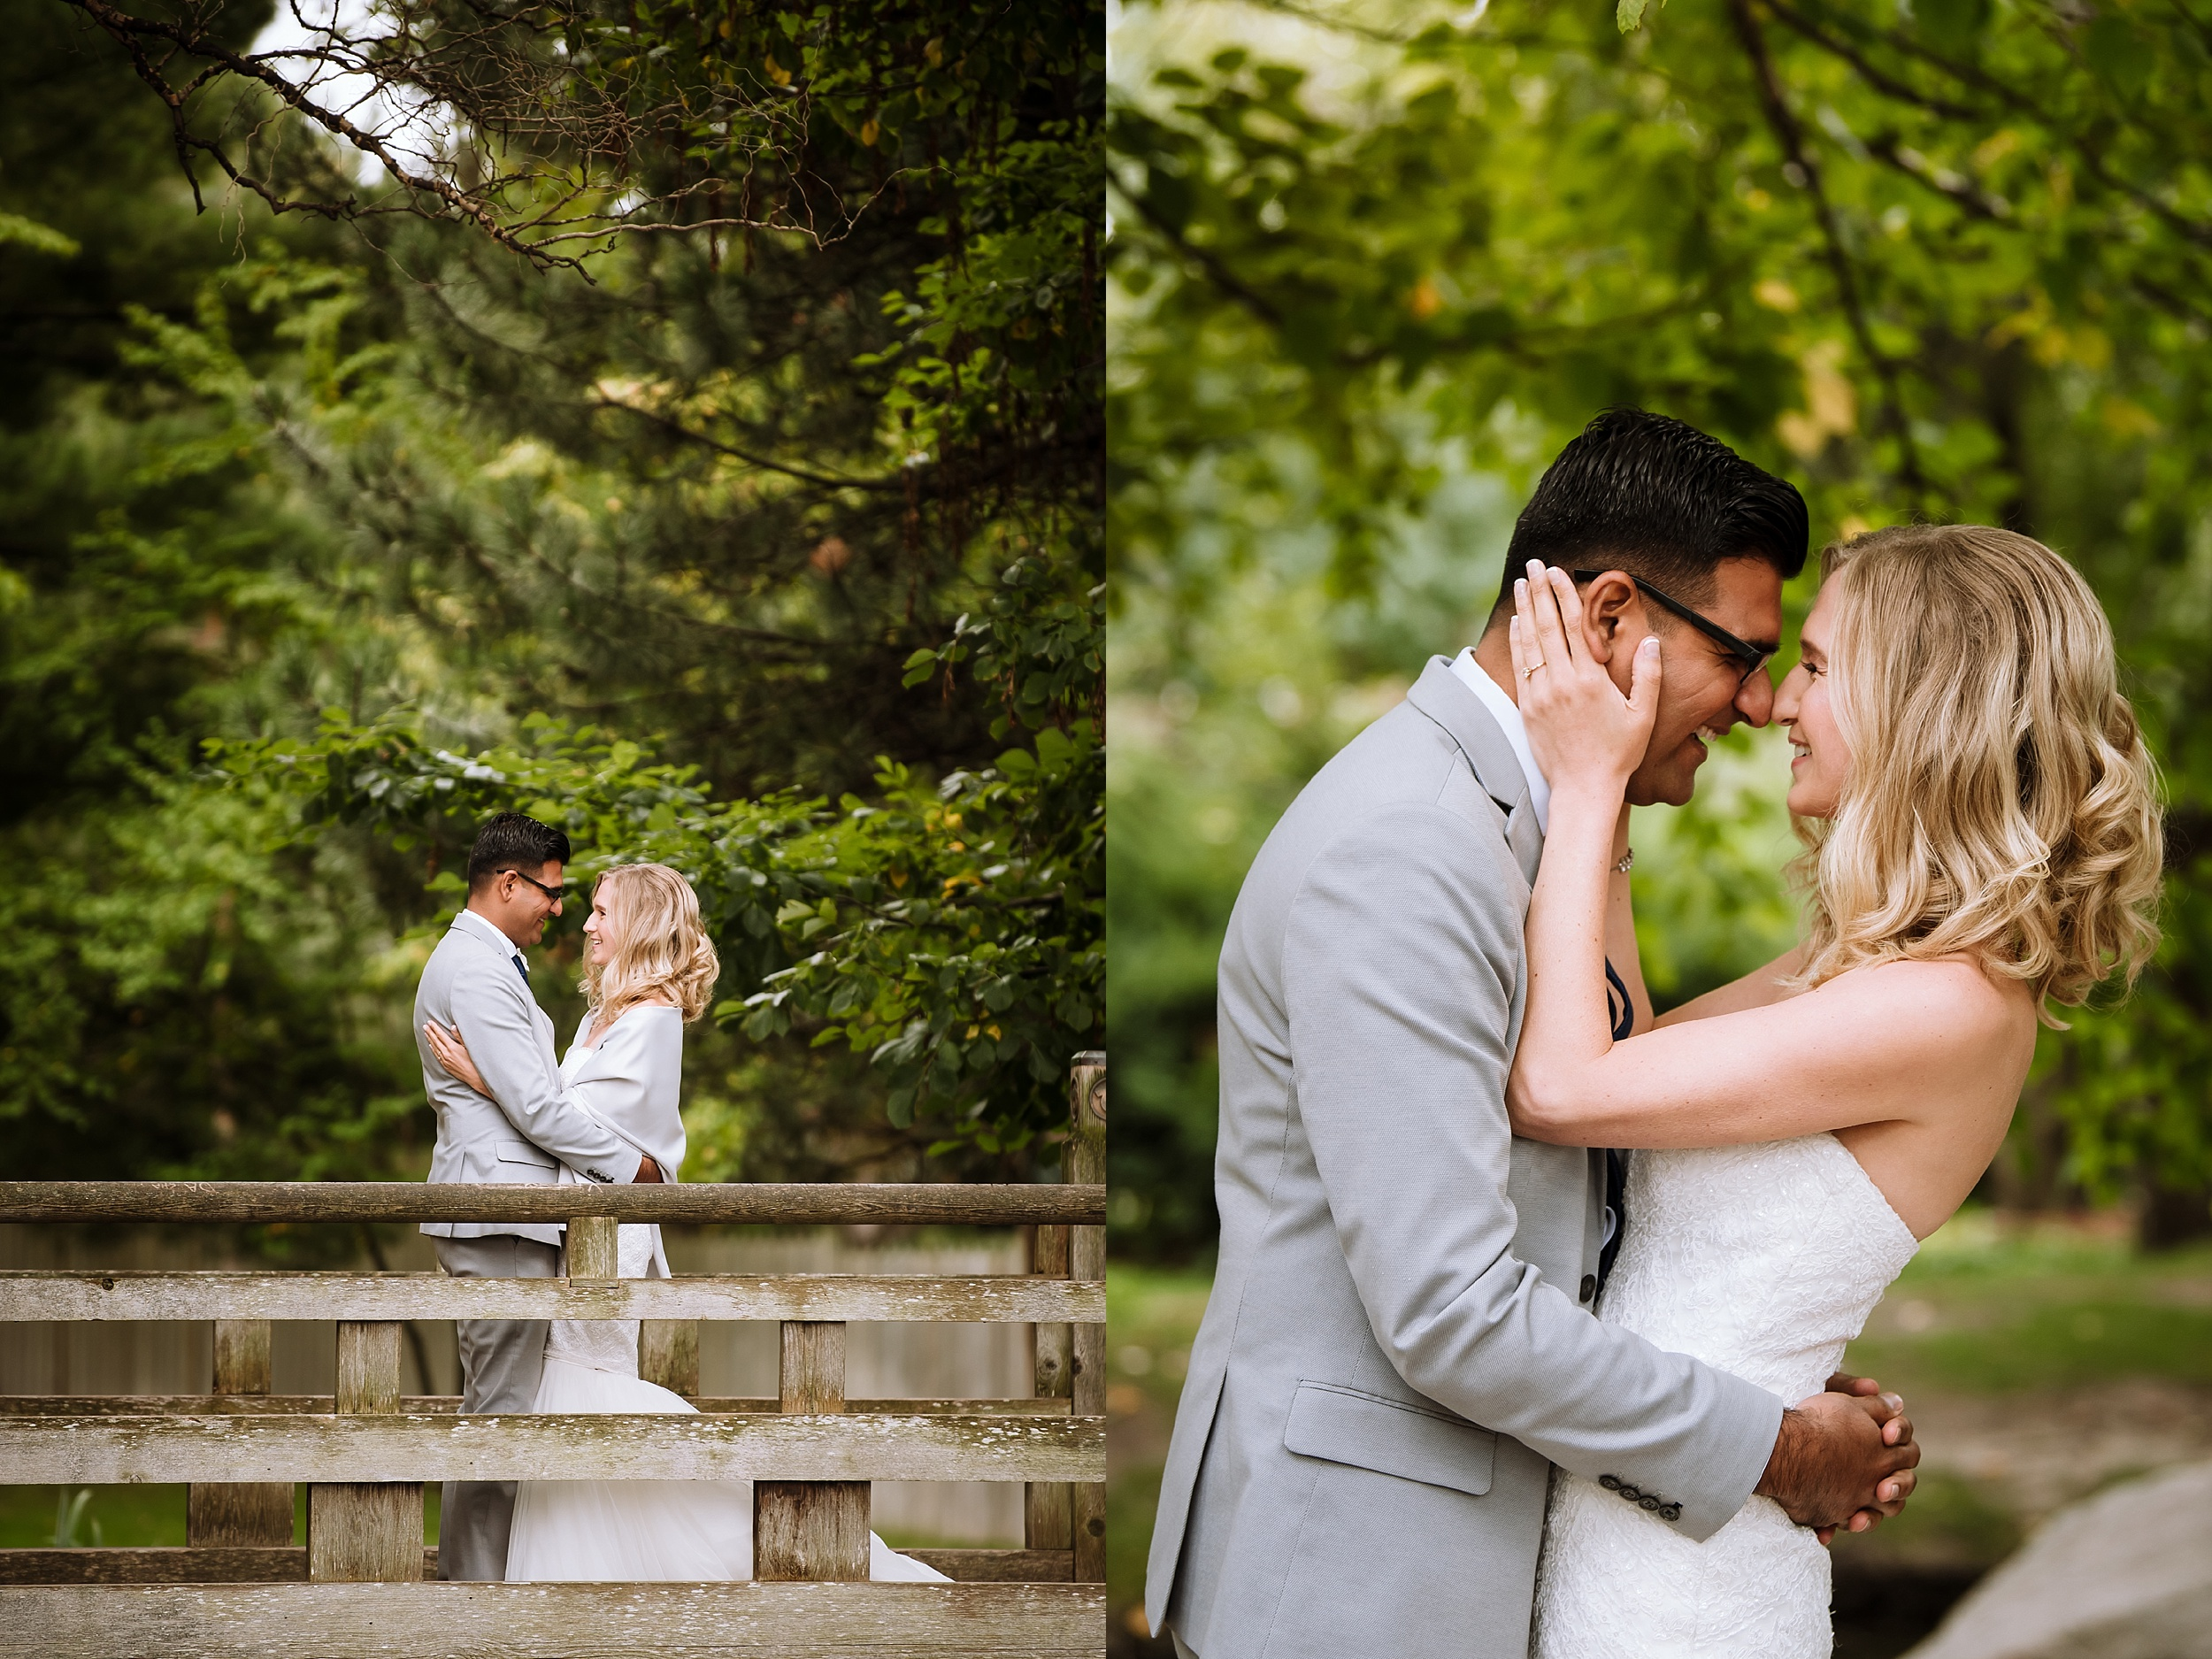 Kariya_Park_Wedding_Shoot_Toronto_Photographer_0026.jpg